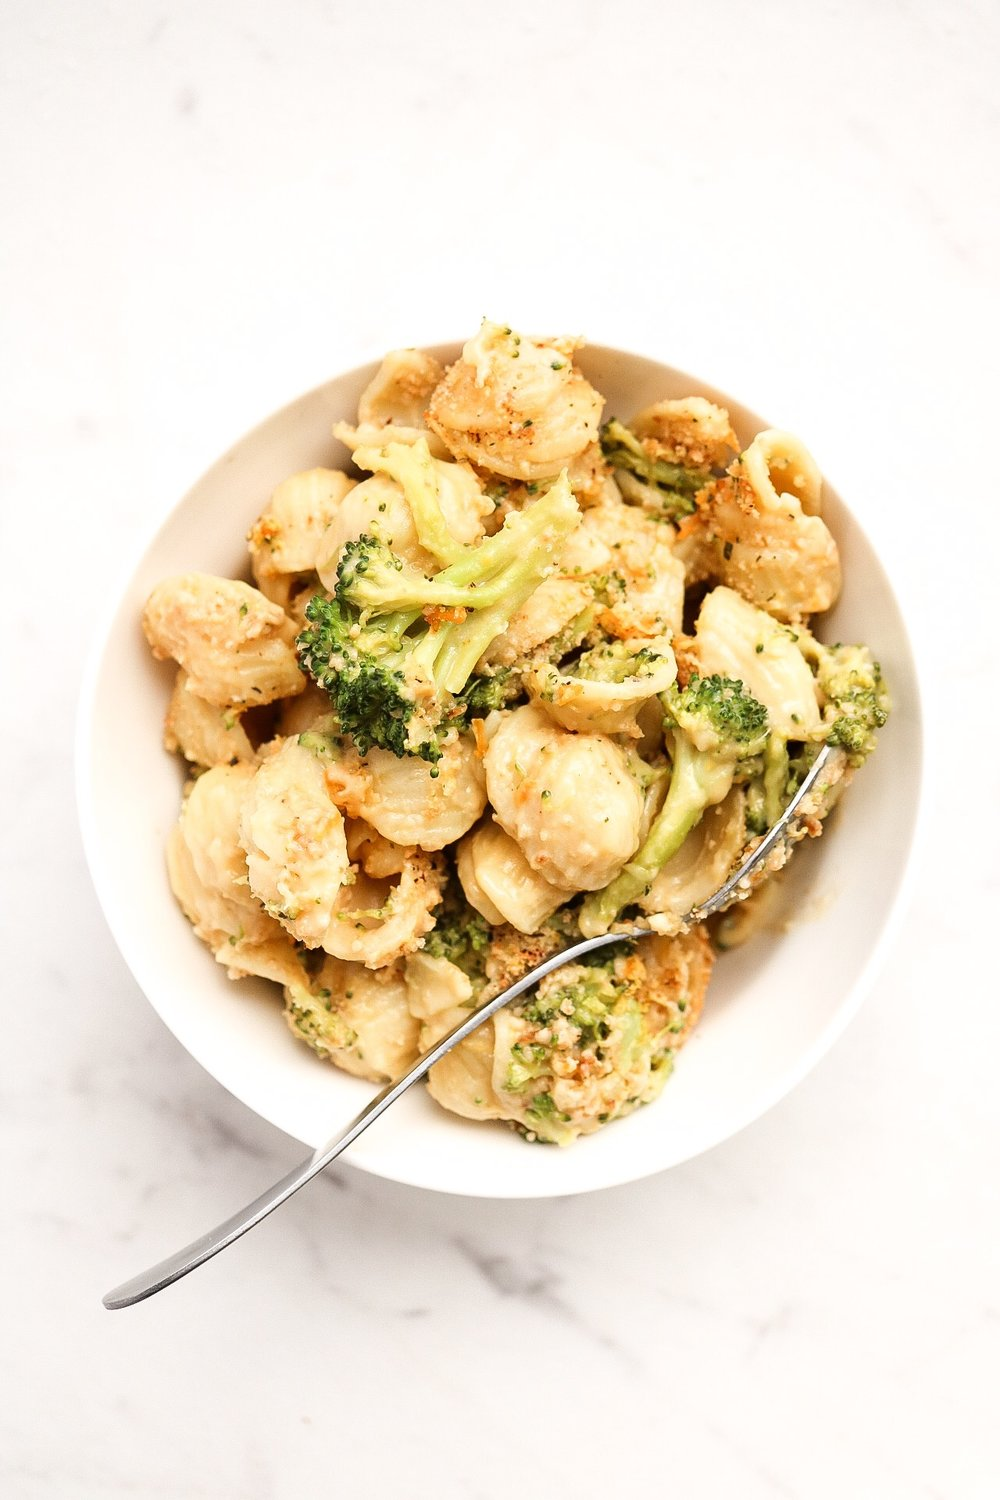 Broccoli Mac & Cheese - INGREDIENTS:3 cups pasta1 head broccoli1 Tbsp oil2 Tbsp all purpose flour1 cup plant milk1/2 cup vegan shredded cheese1/3 cup Bob's Red Mill nutritional yeast1 tsp salt1/4 cup breadcrumbsINSTRUCTIONS:Boil your pasta and broccoli until it's cooked about 3/4 of the way, and set aside. Preheat your oven to 400F. In a saucepan, add the oil and flour and allow to cook on medium heat for about a minute. This is your roux - the oil and flour will form into a paste and become golden, creating a nutty aroma. Slowly begin adding in the milk, and stirring as you do so. Once all of the milk is incorporated, allow the mix to come to a boil. Then, add in the salt, vegan cheese, and nutritional yeast. Once the sauce has thickened a bit and everything is melted, add in the broccoli and pasta and stir. Add this mixture to an oven safe pan, sprinkling your breadcrumbs on top, along with some extra vegan cheese and nutritional yeast. Bake the pasta for about 20 minutes - you can broil the top for the last few minutes for a nice golden color.